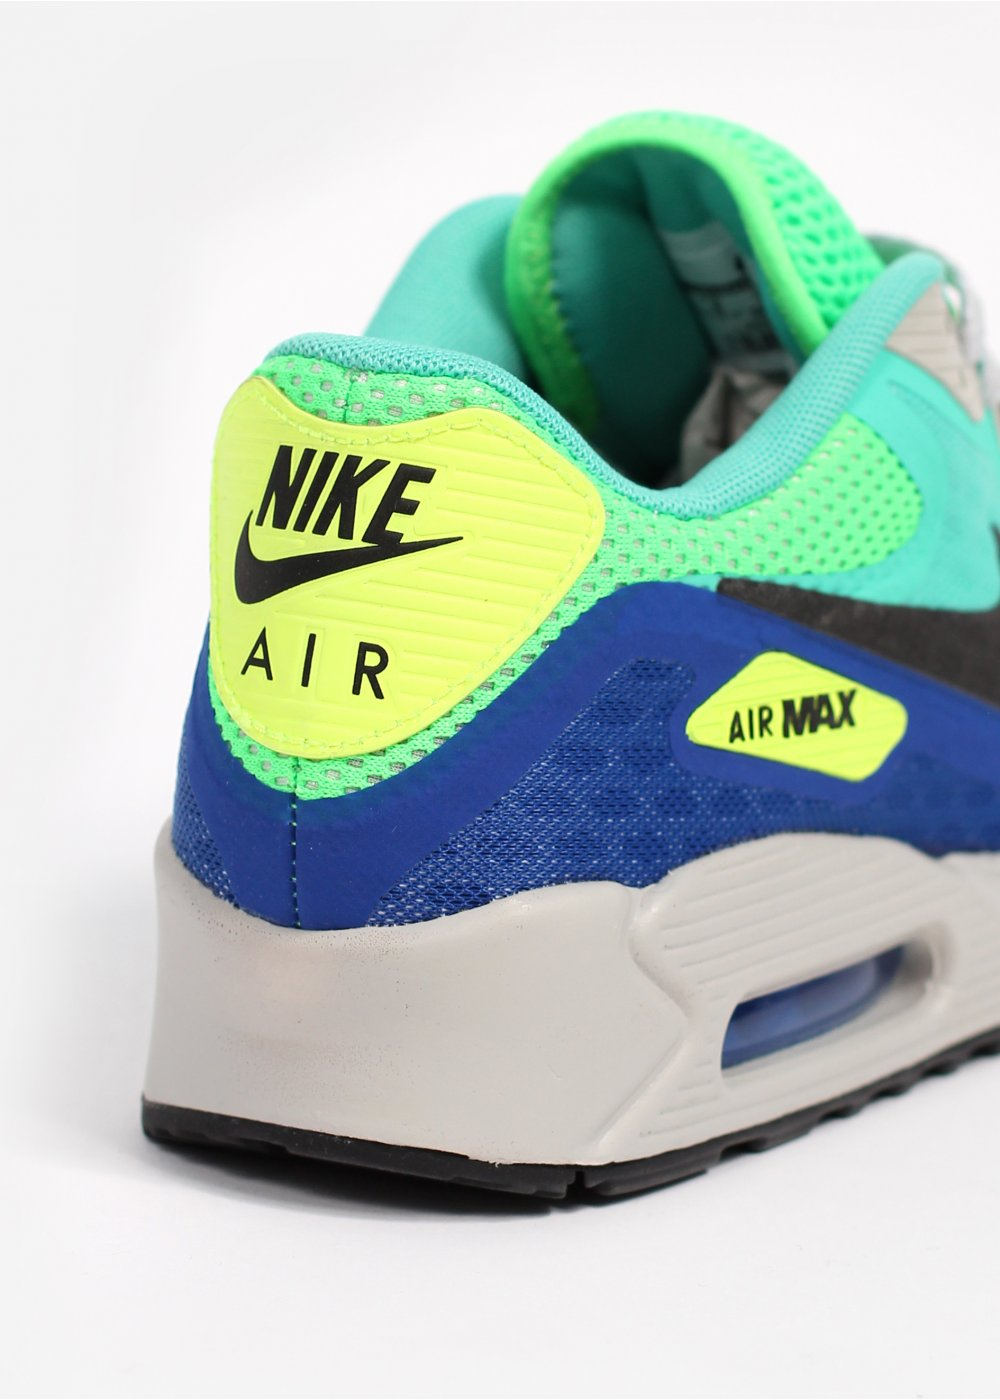 Nike Wmns Air Max 90 Crystal Mint